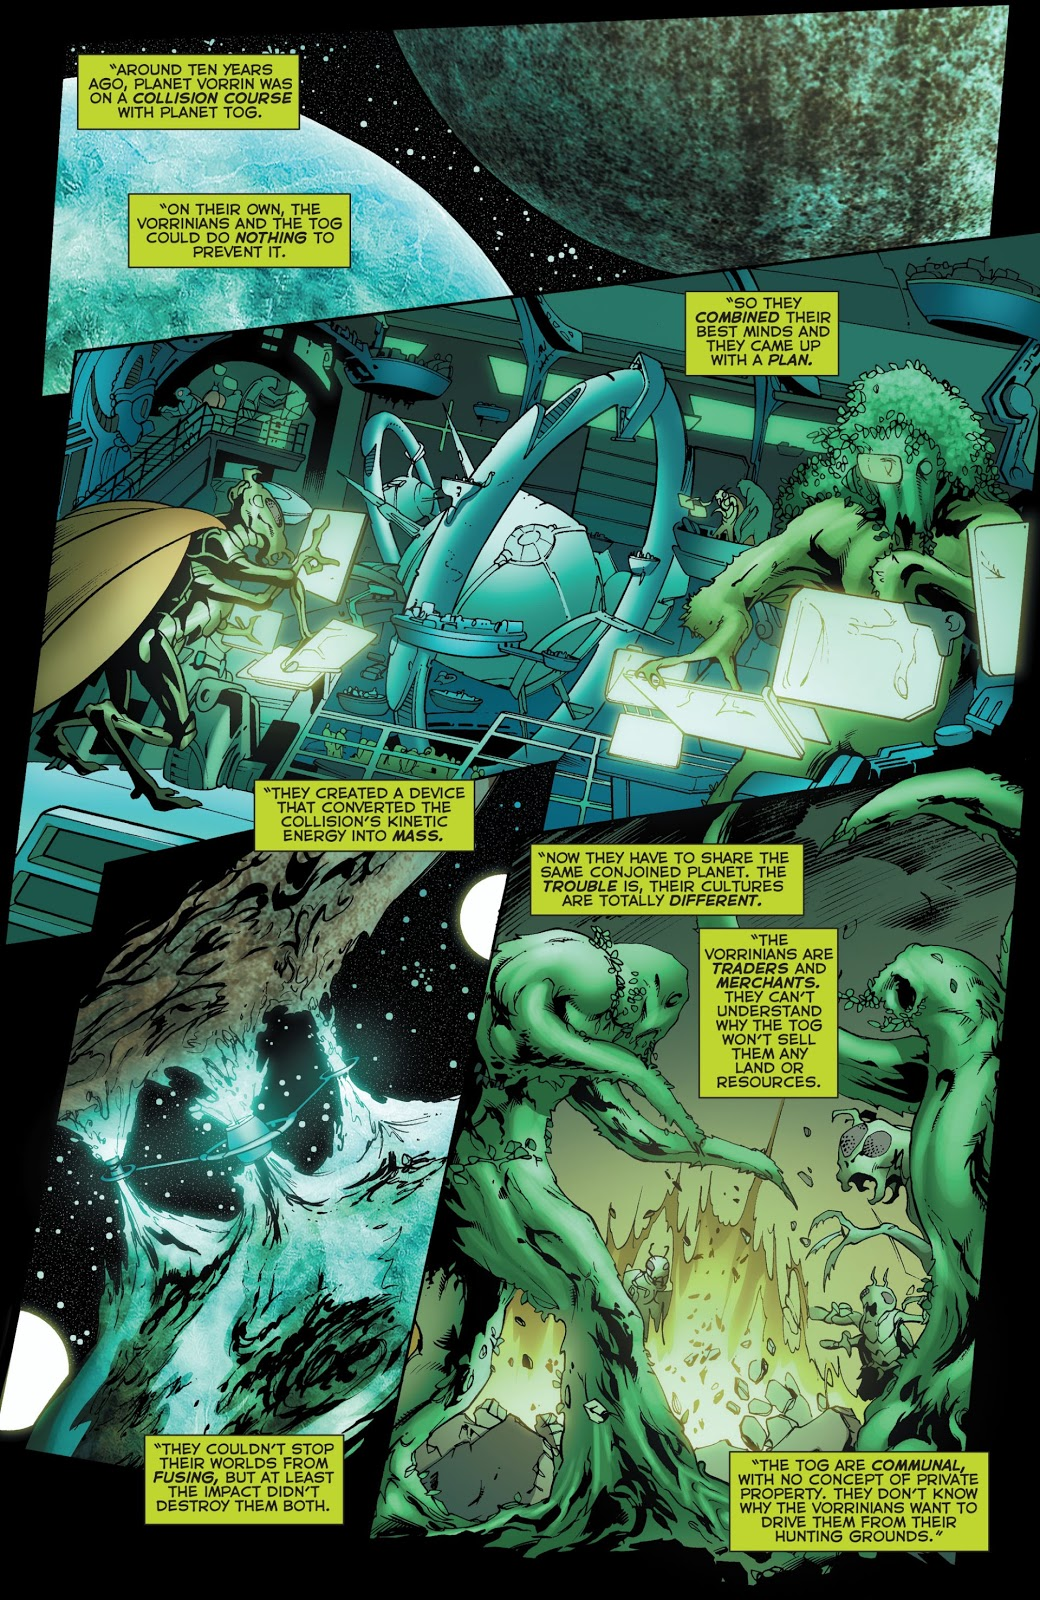 From - Green Lantern Corps Vol. 2 #60